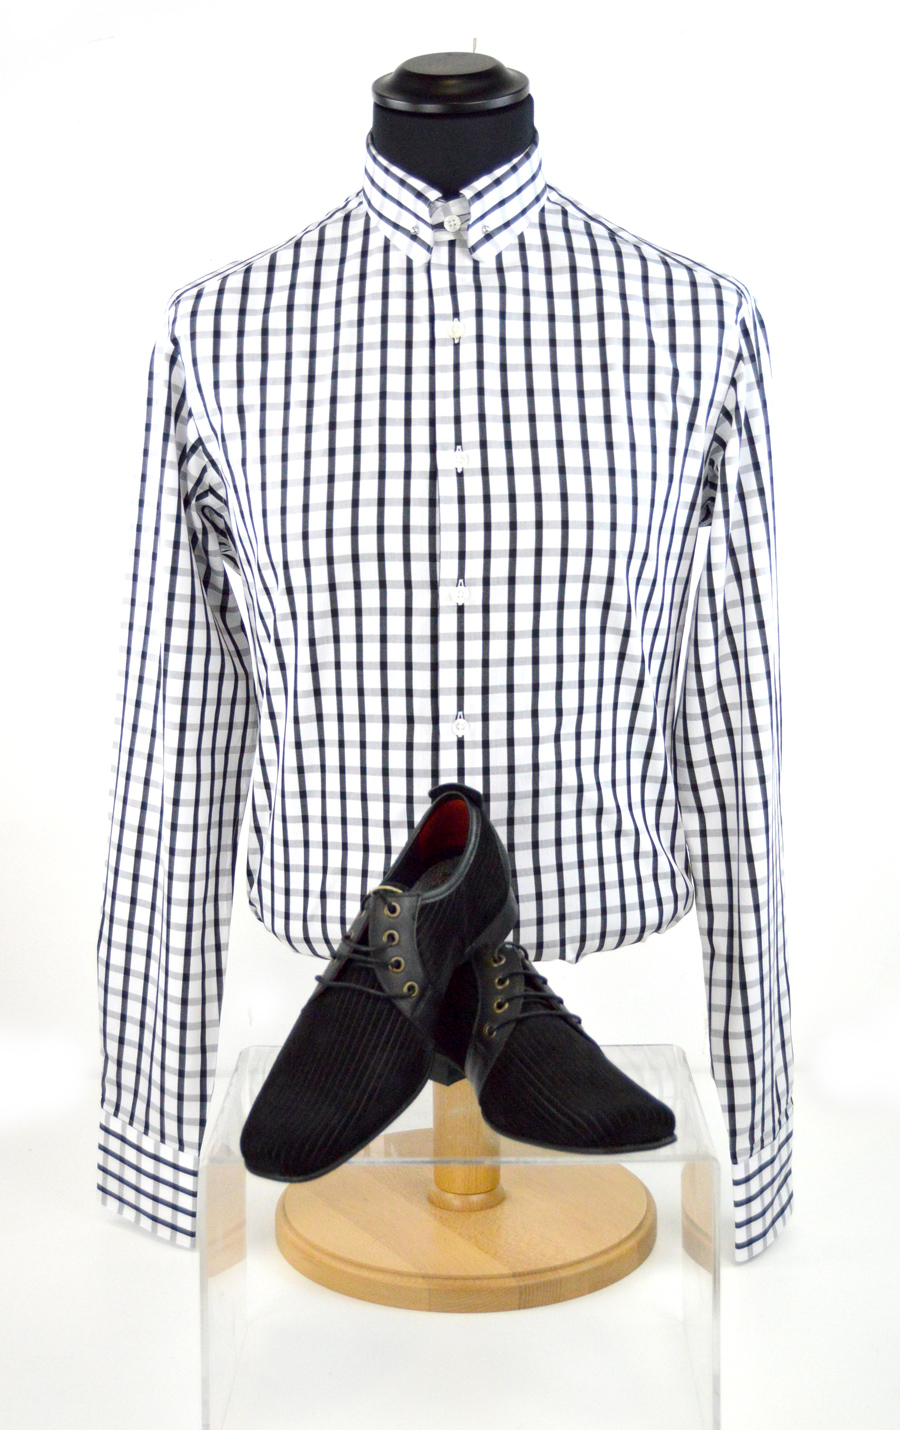 modshoes-suede-corded-shoes-exclusive-colours-and-hawkins-sherperds-shirt-checked-01